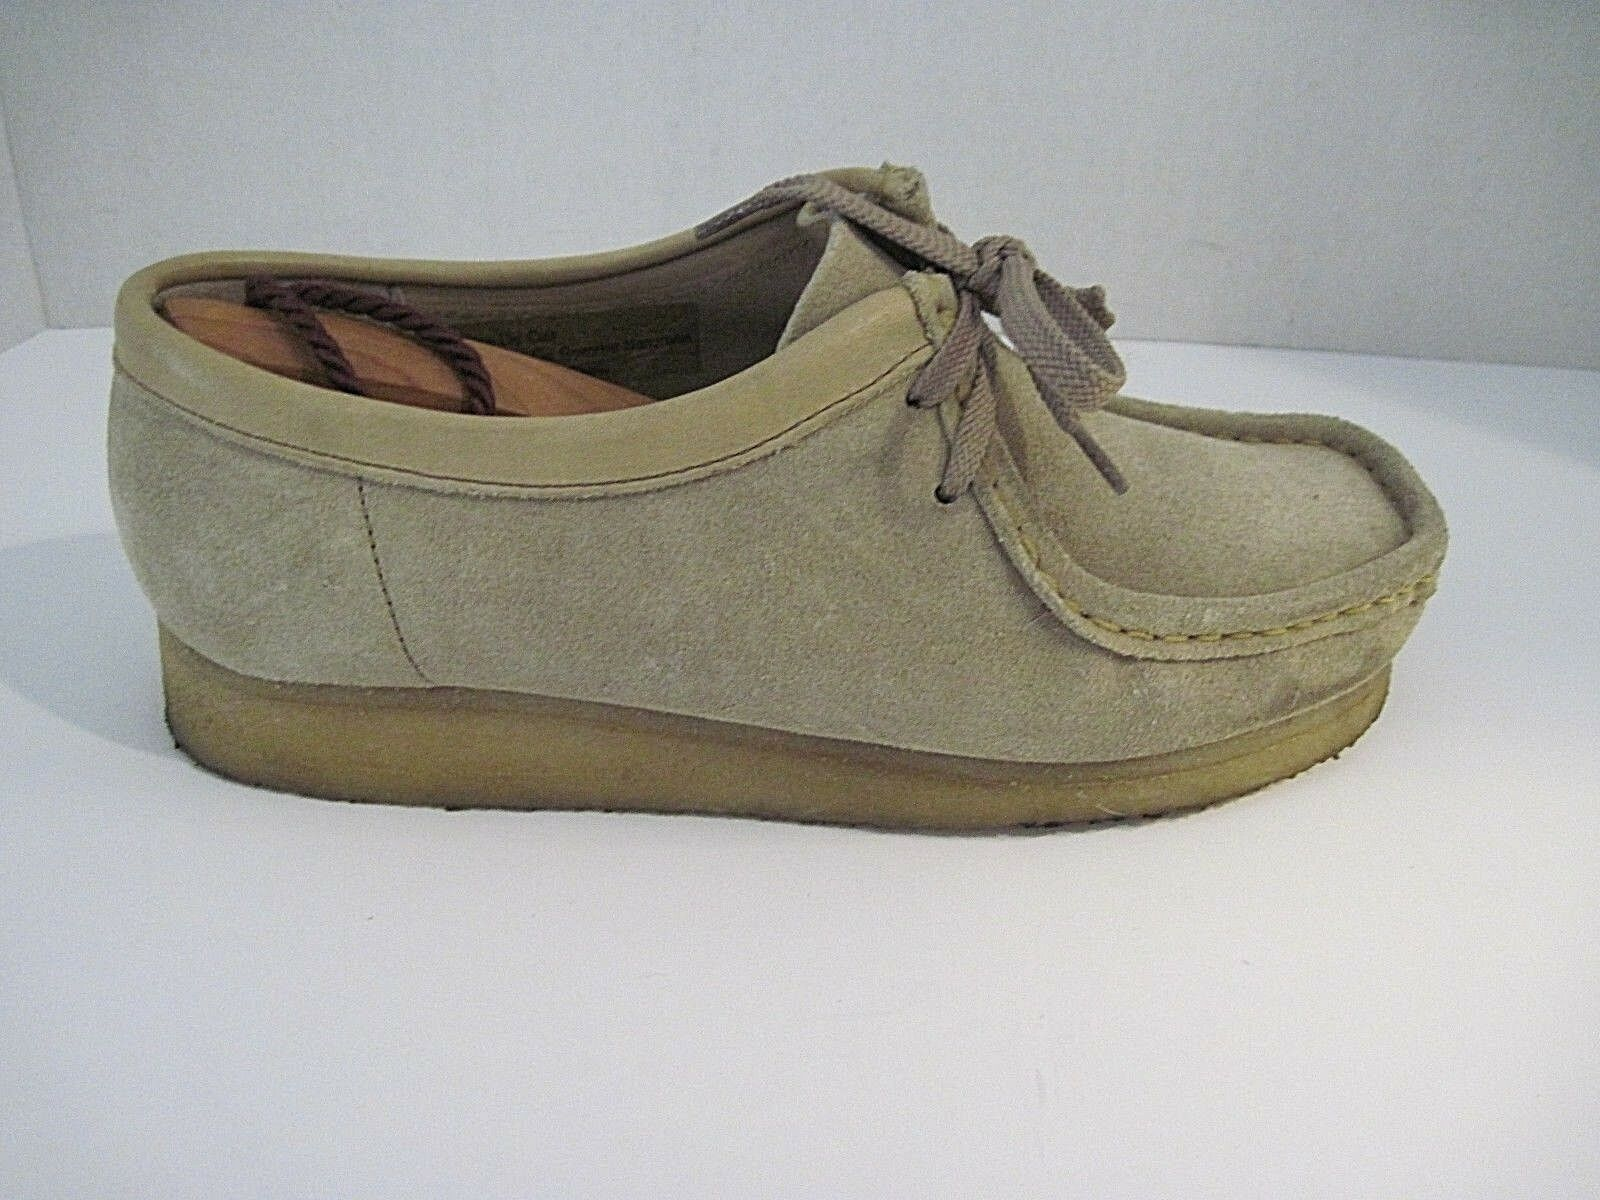 Clarks Originals Wallabee 35395 Sand Suede Crepe Sole Desert shoes Women's 8 M